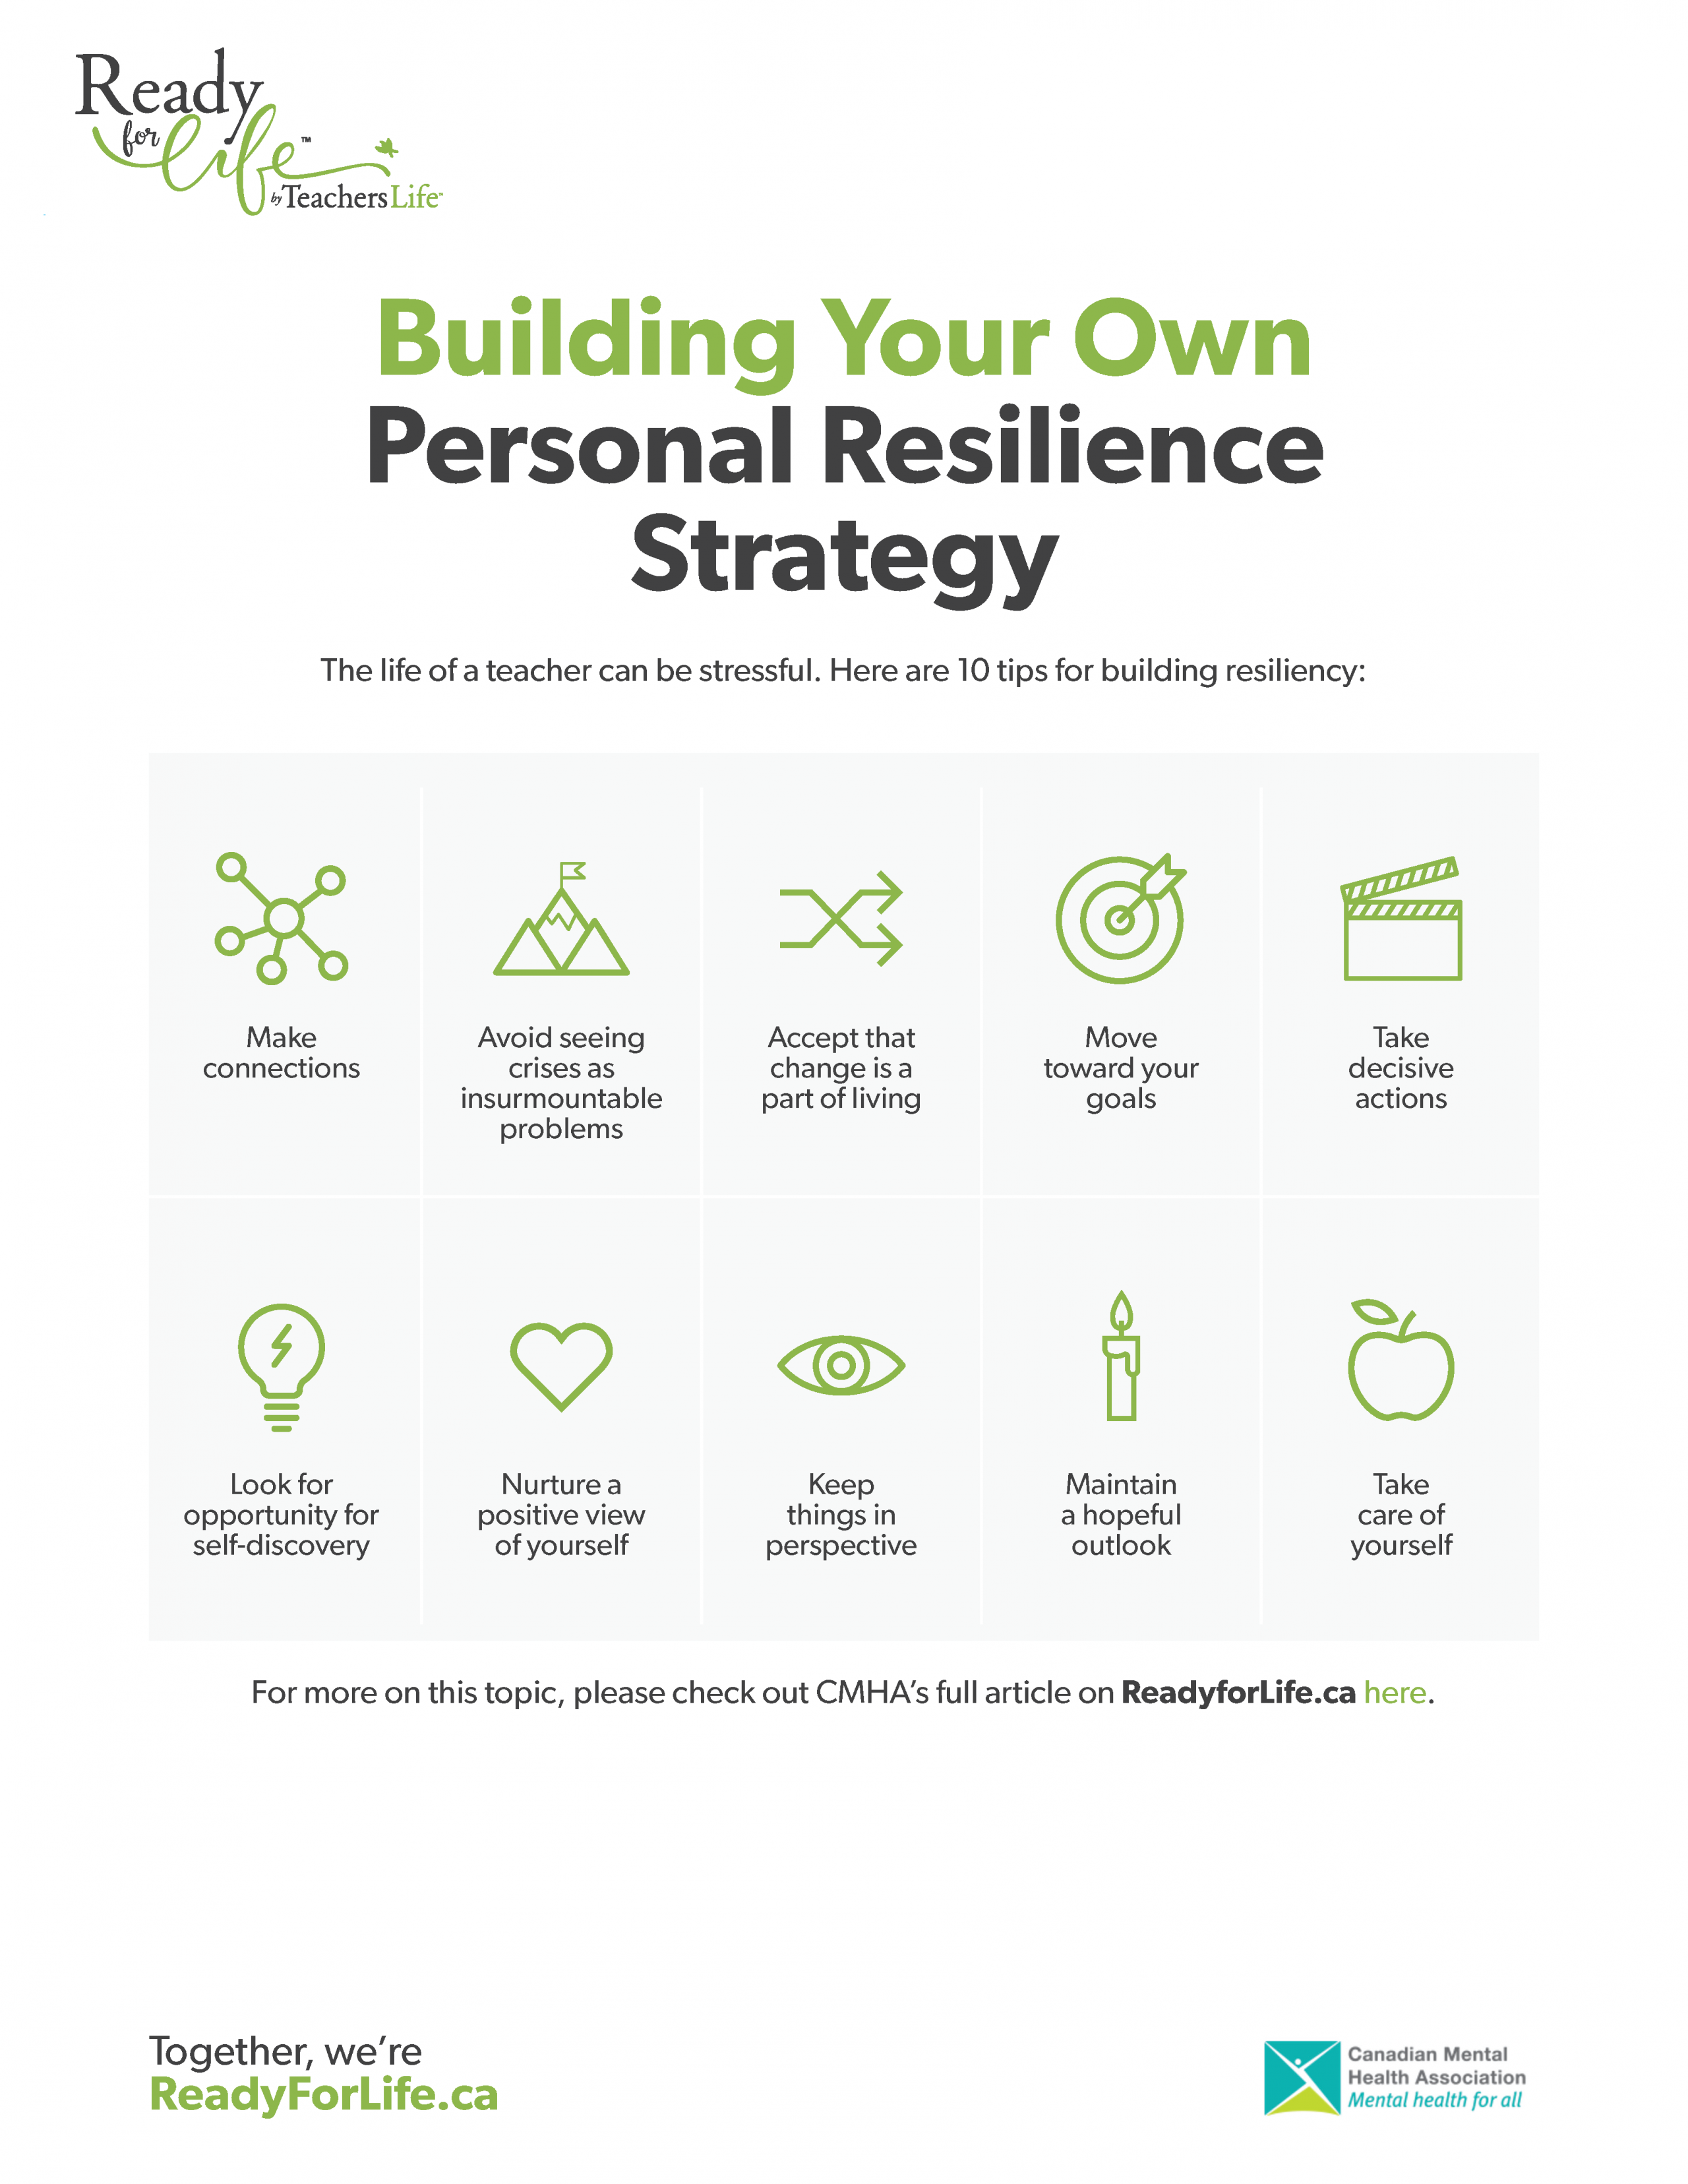 Building Your Own Personal Resilience Strategy (Infographic)